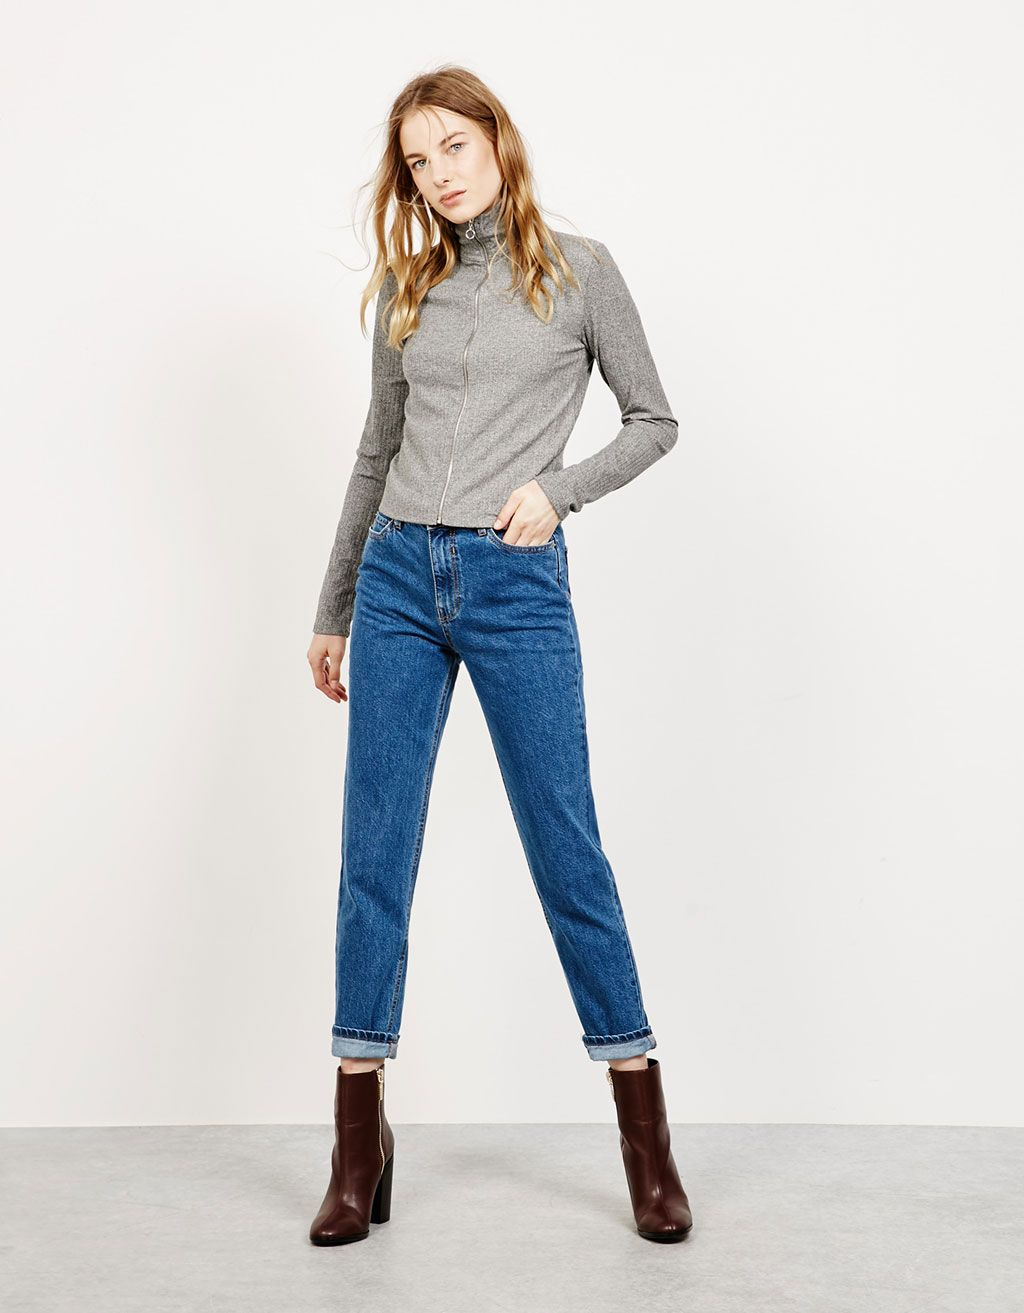 Bershka Colombia - Jeans hight waist 'Mom Fit' | outfits